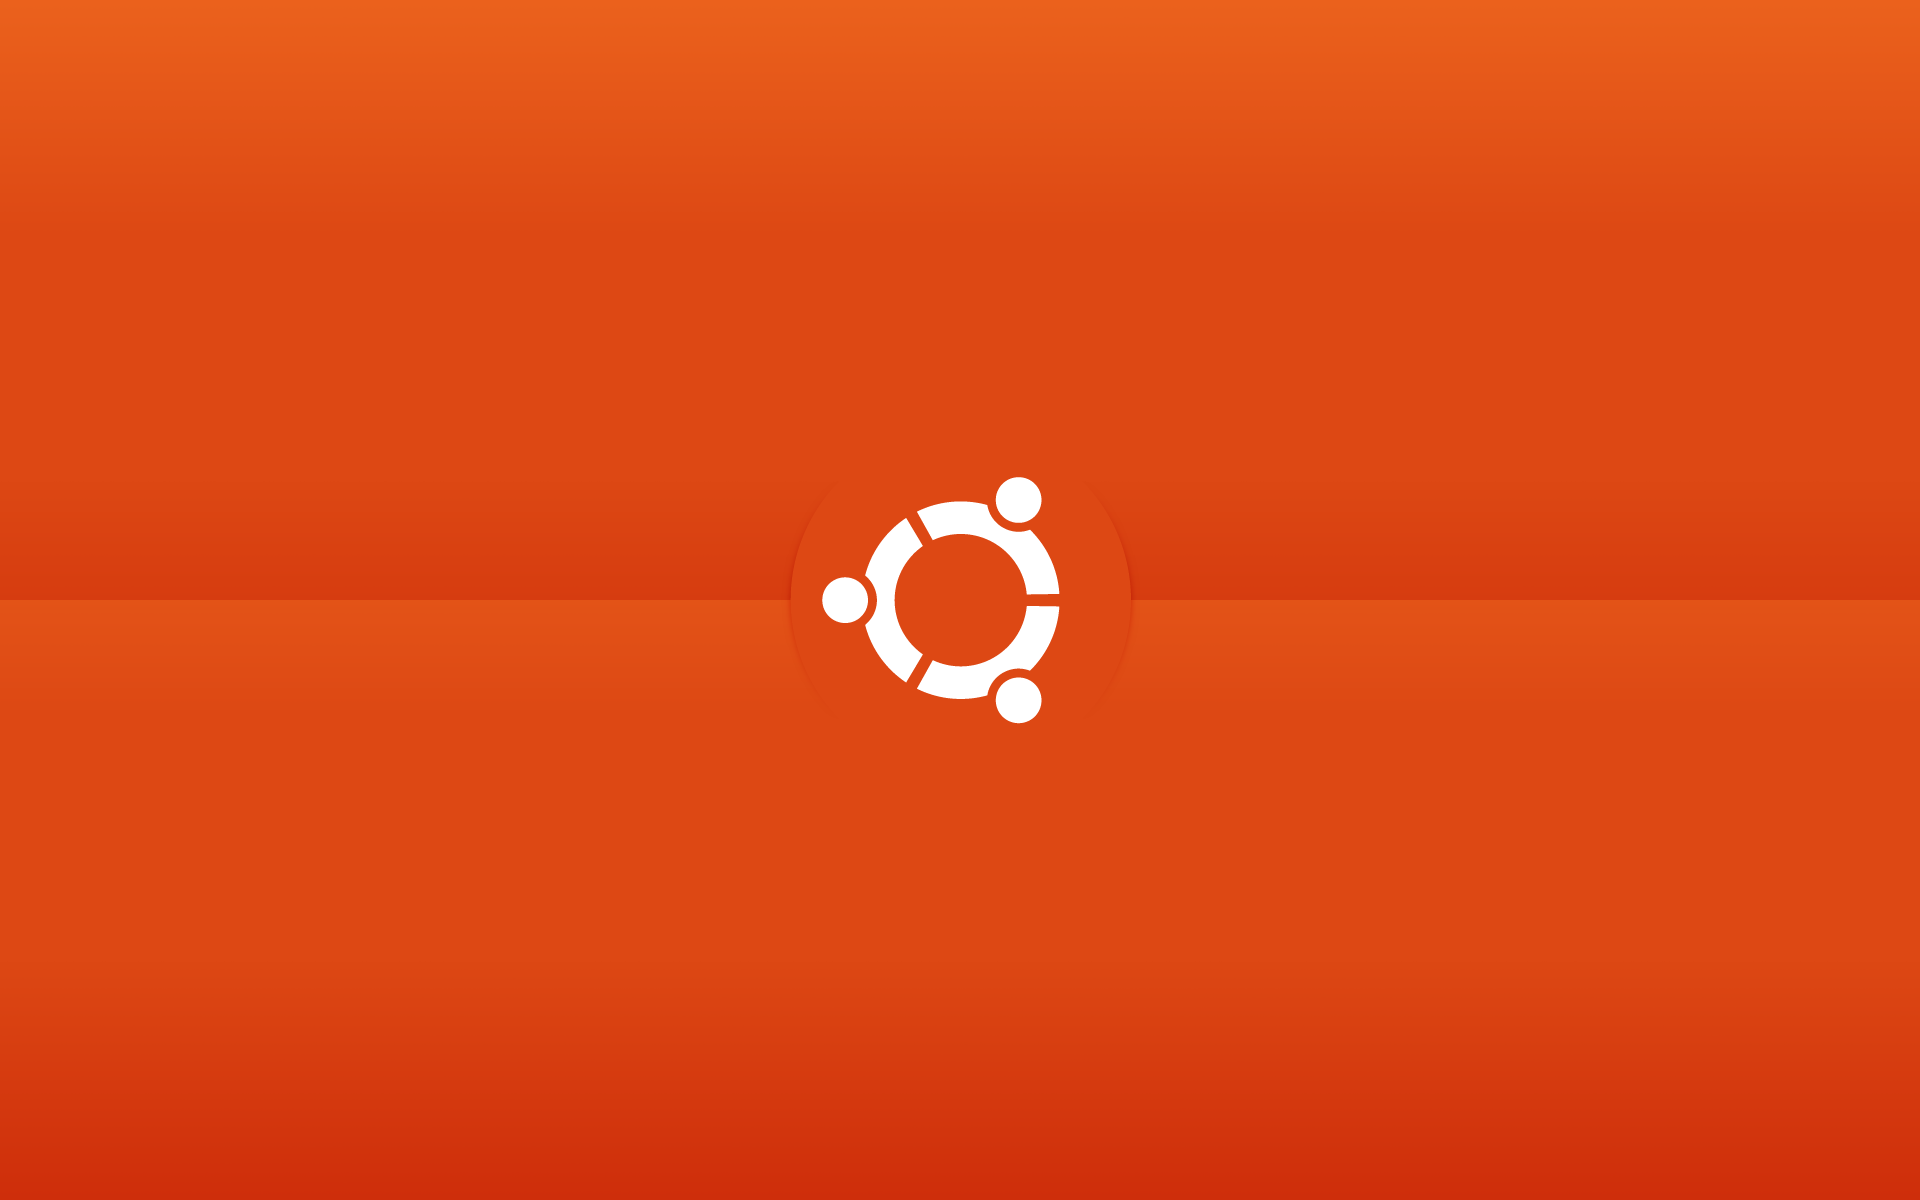 ubuntu minimalistic wallpaper by cajefm customization wallpaper hdtv 1920x1200